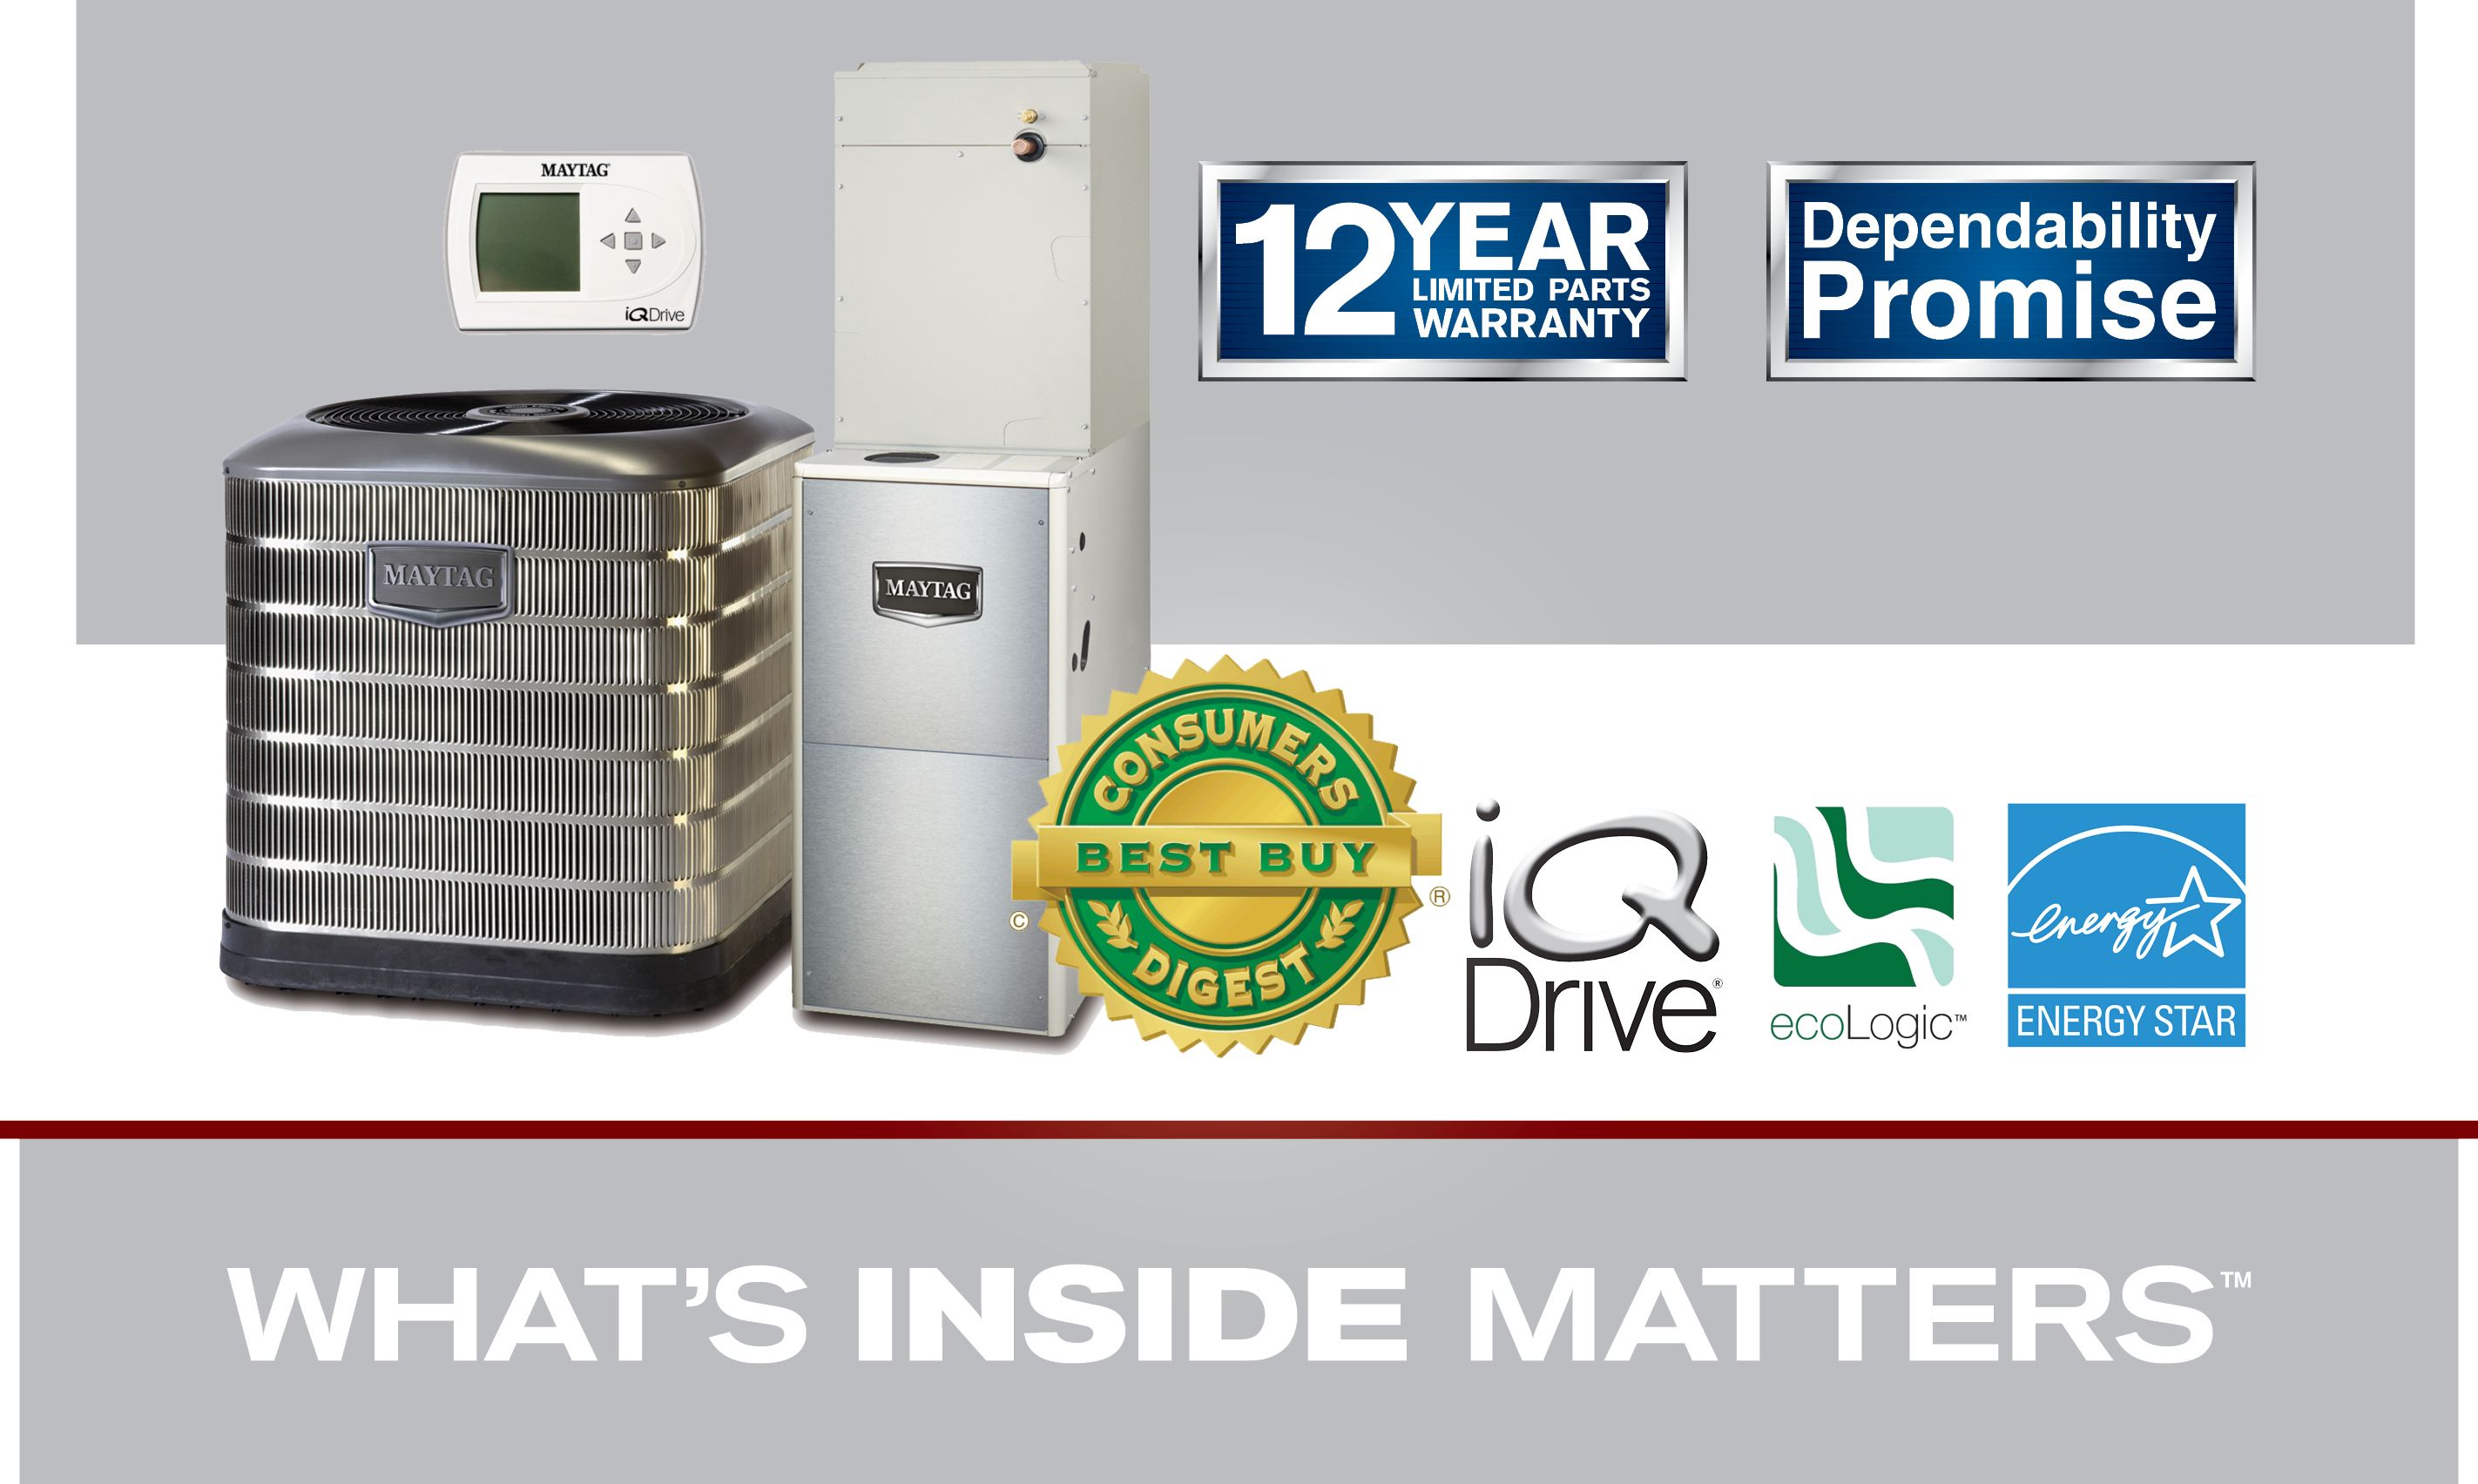 2j Supply Is Proud To Feature The Maytag Line Of Heating And